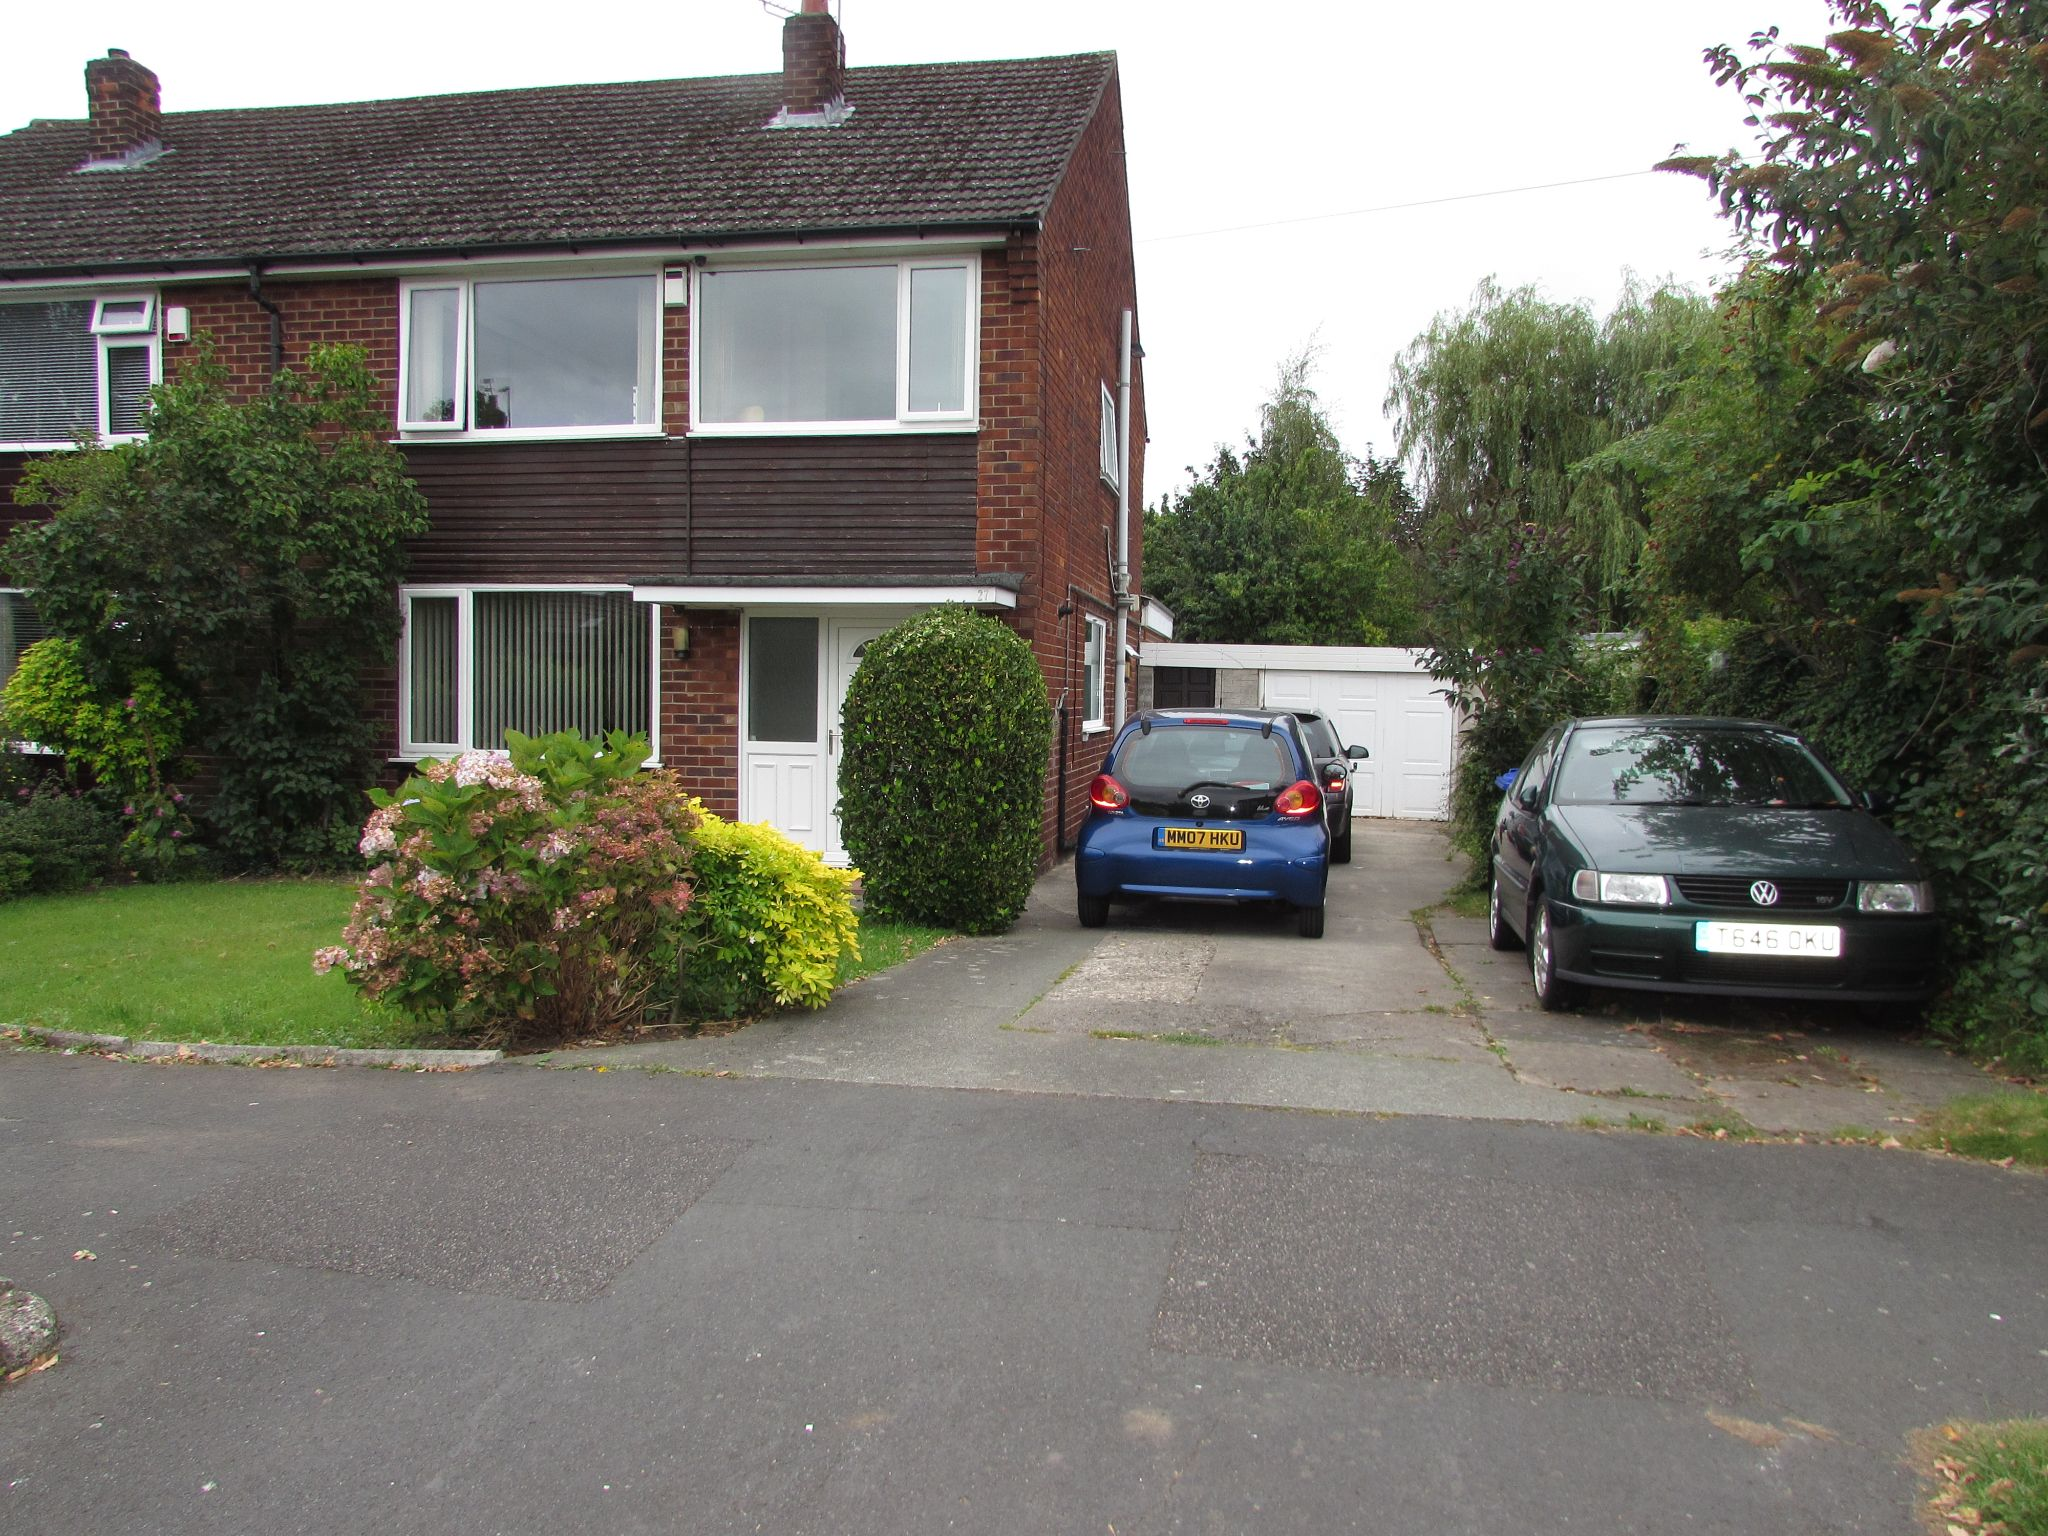 5 Bedroom Semi-detached House For Sale - Photograph 31